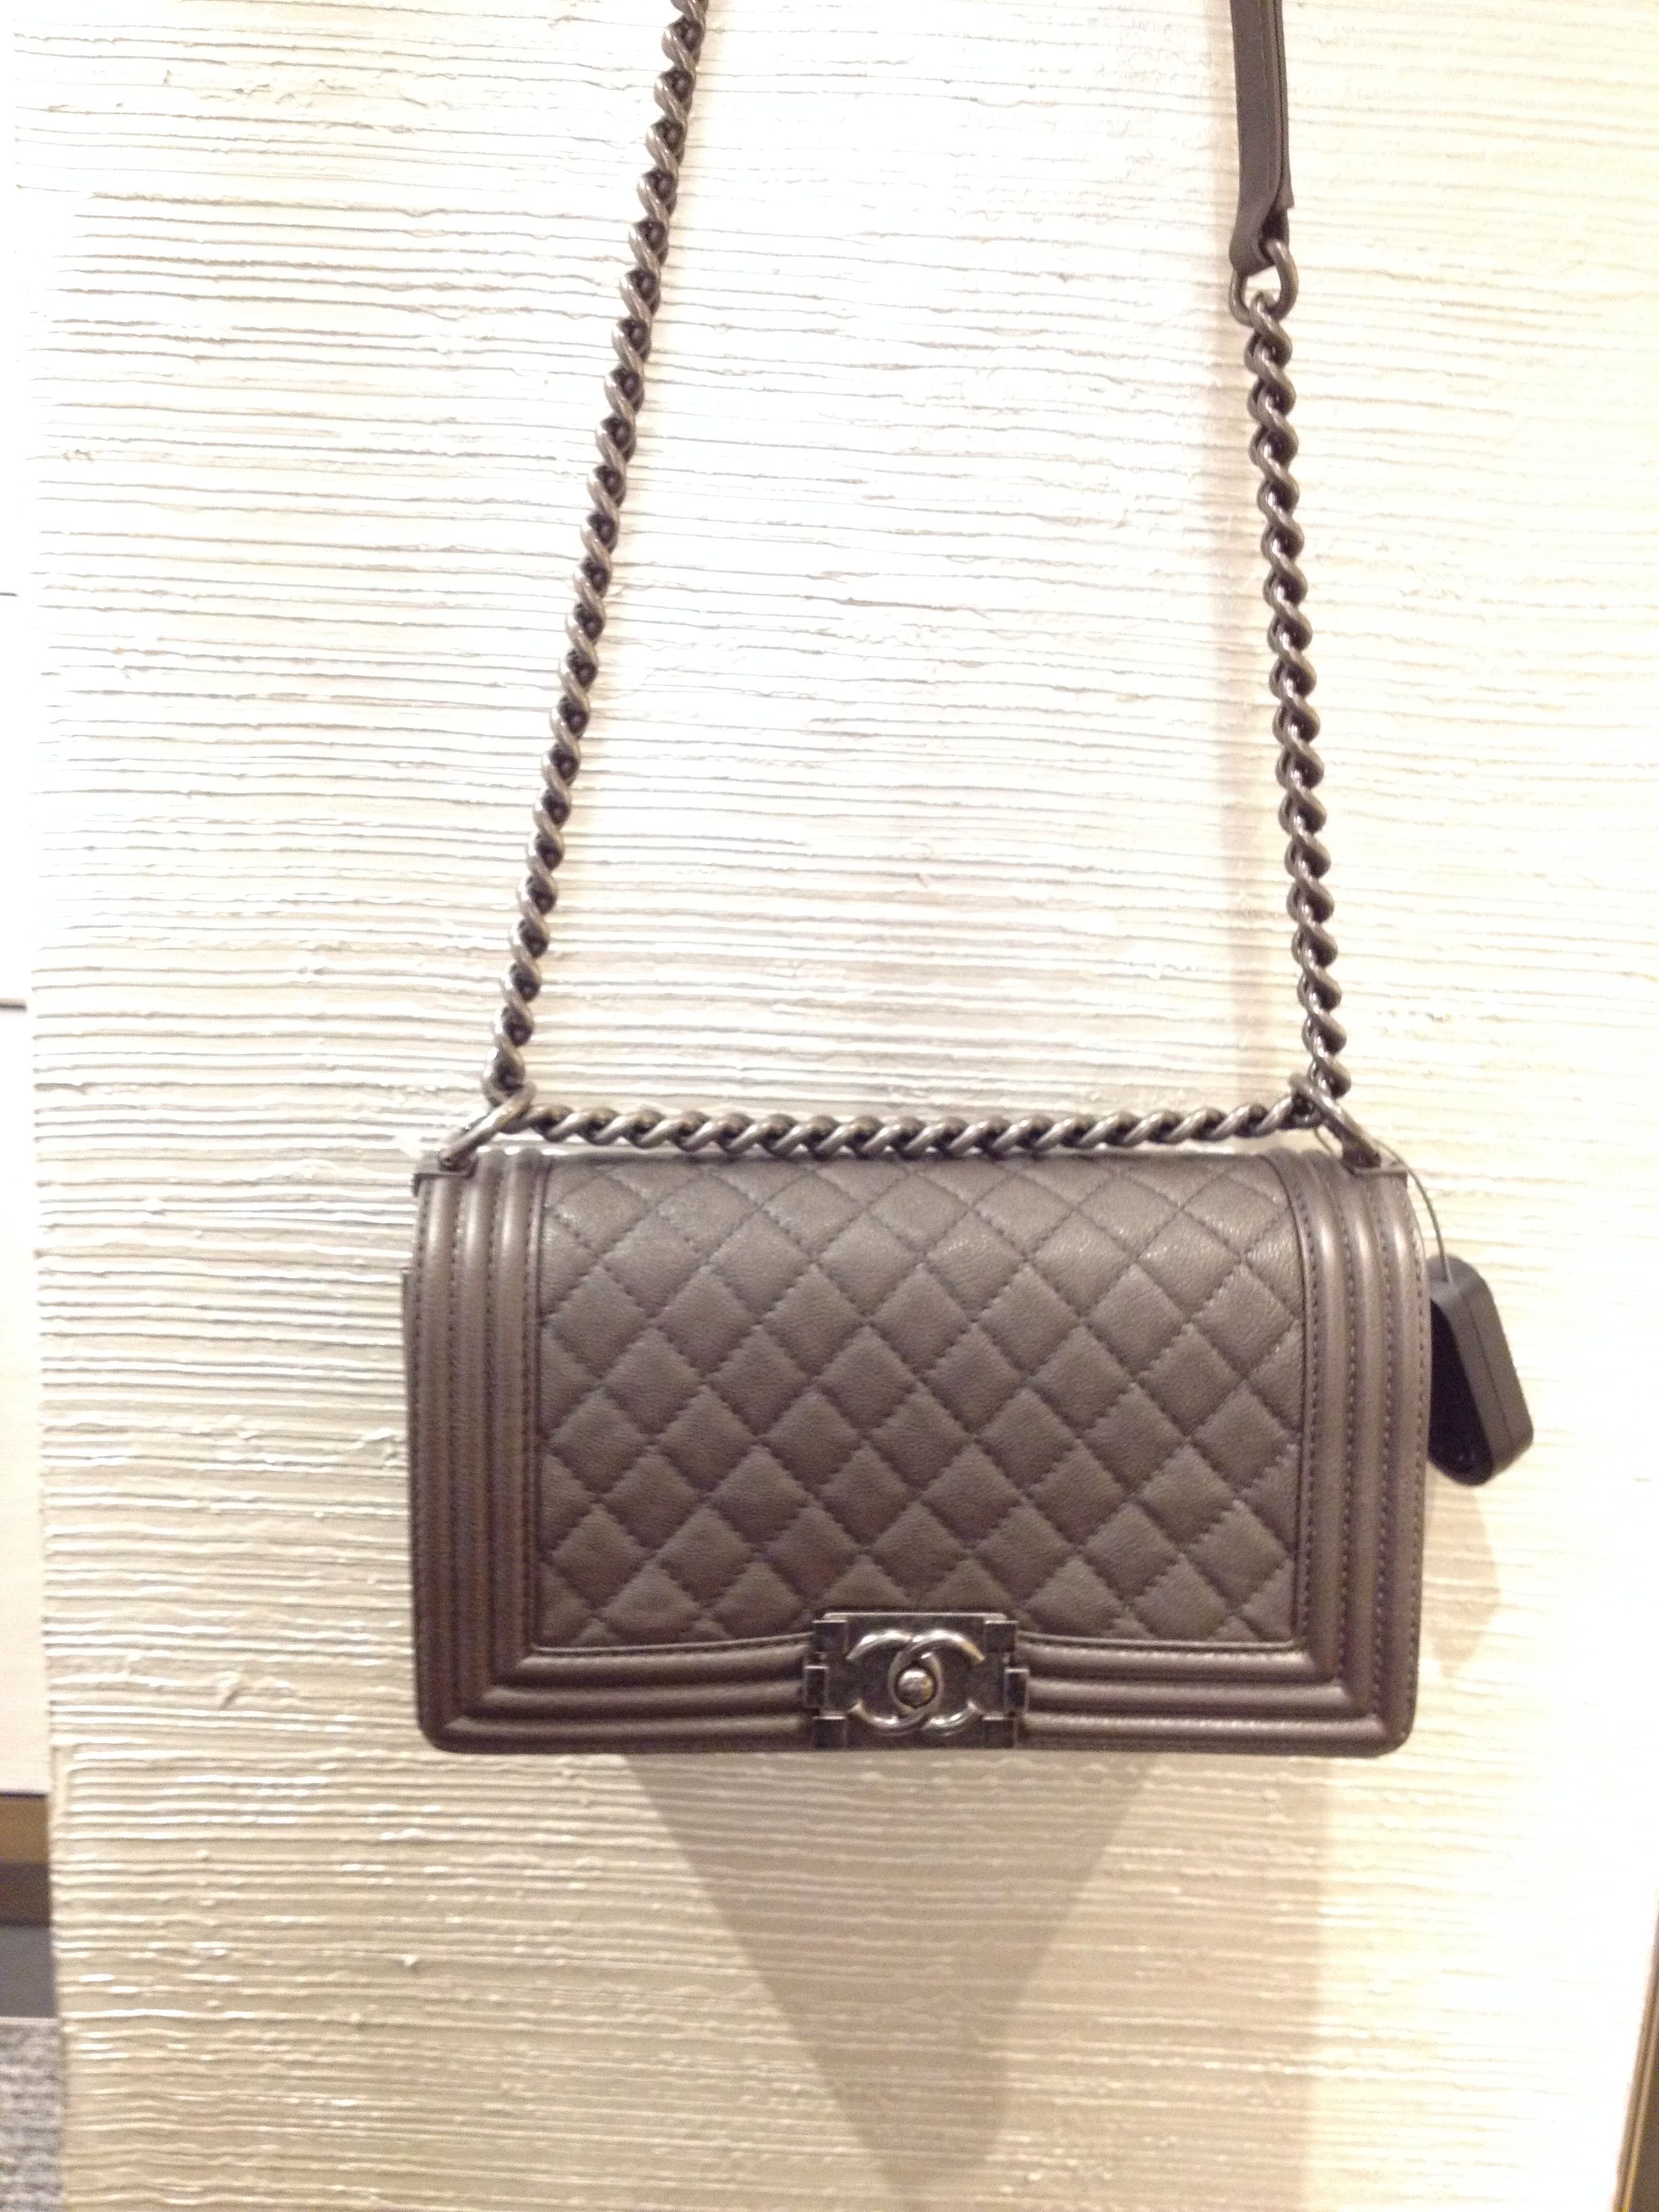 e08d236c8572 Dark grey calf le boy bag 2013 - Bergdorf reserved for me!! | BAGS ...